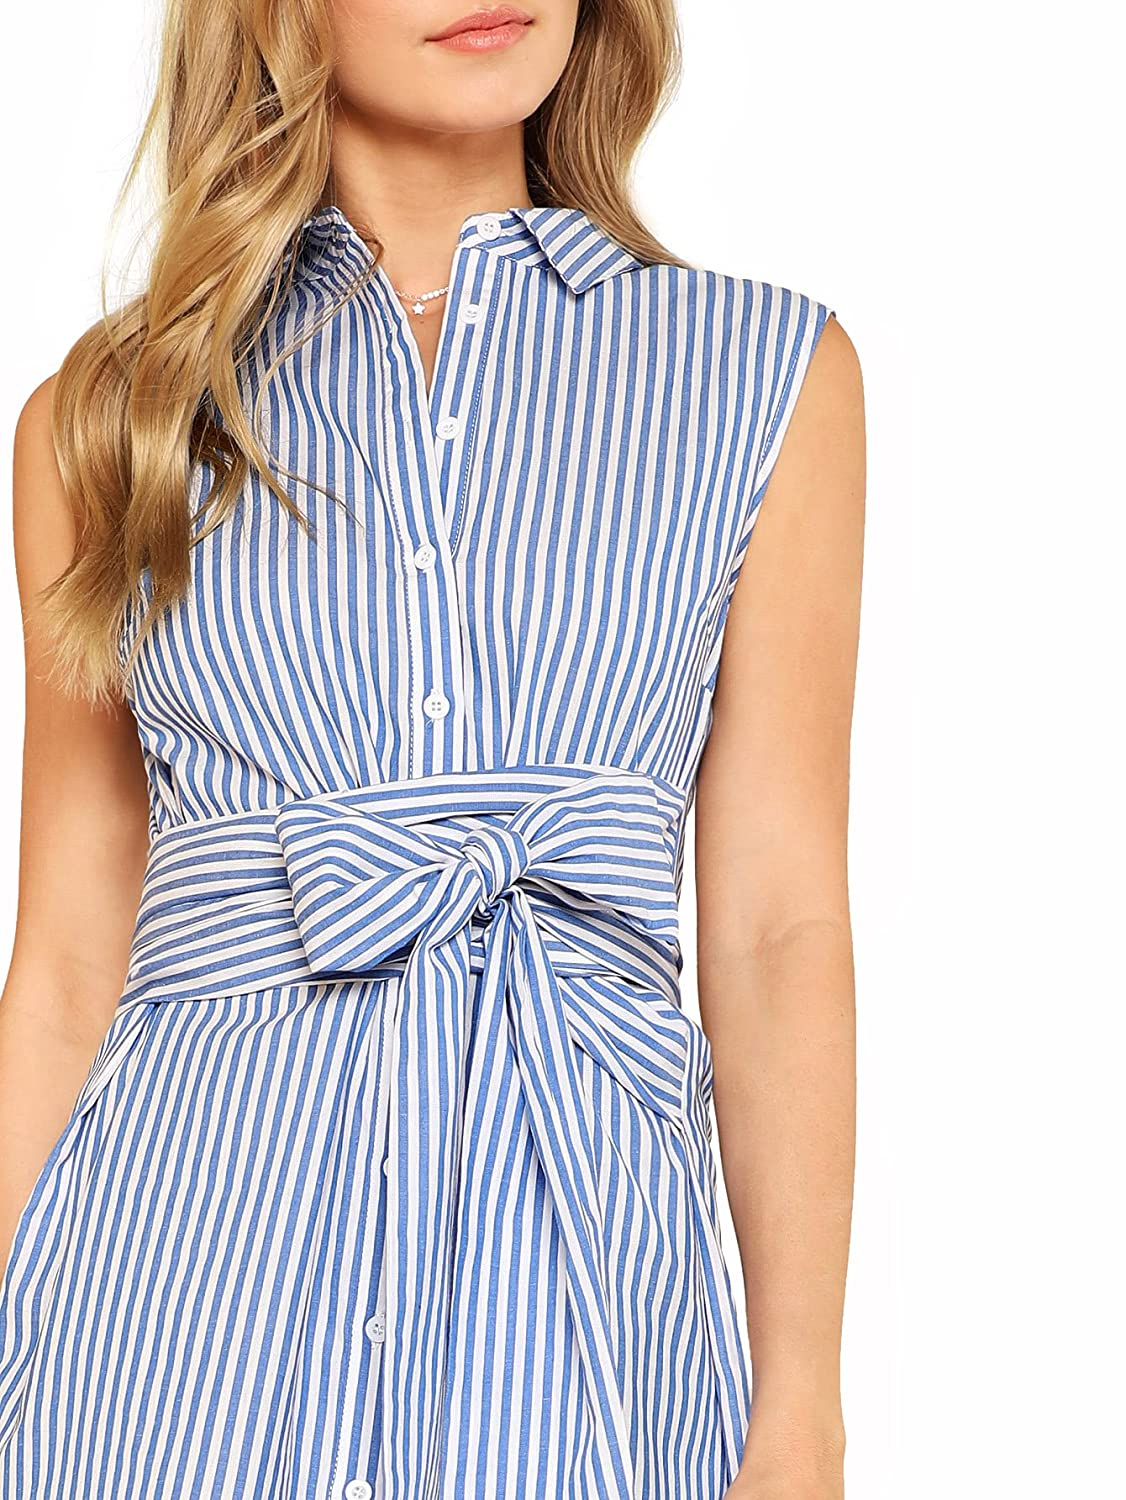 87bdedf7bf9 Romwe Women s Cute Striped Belted Button up Collar Summer Short Shirt Dress  at Amazon Women s Clothing store